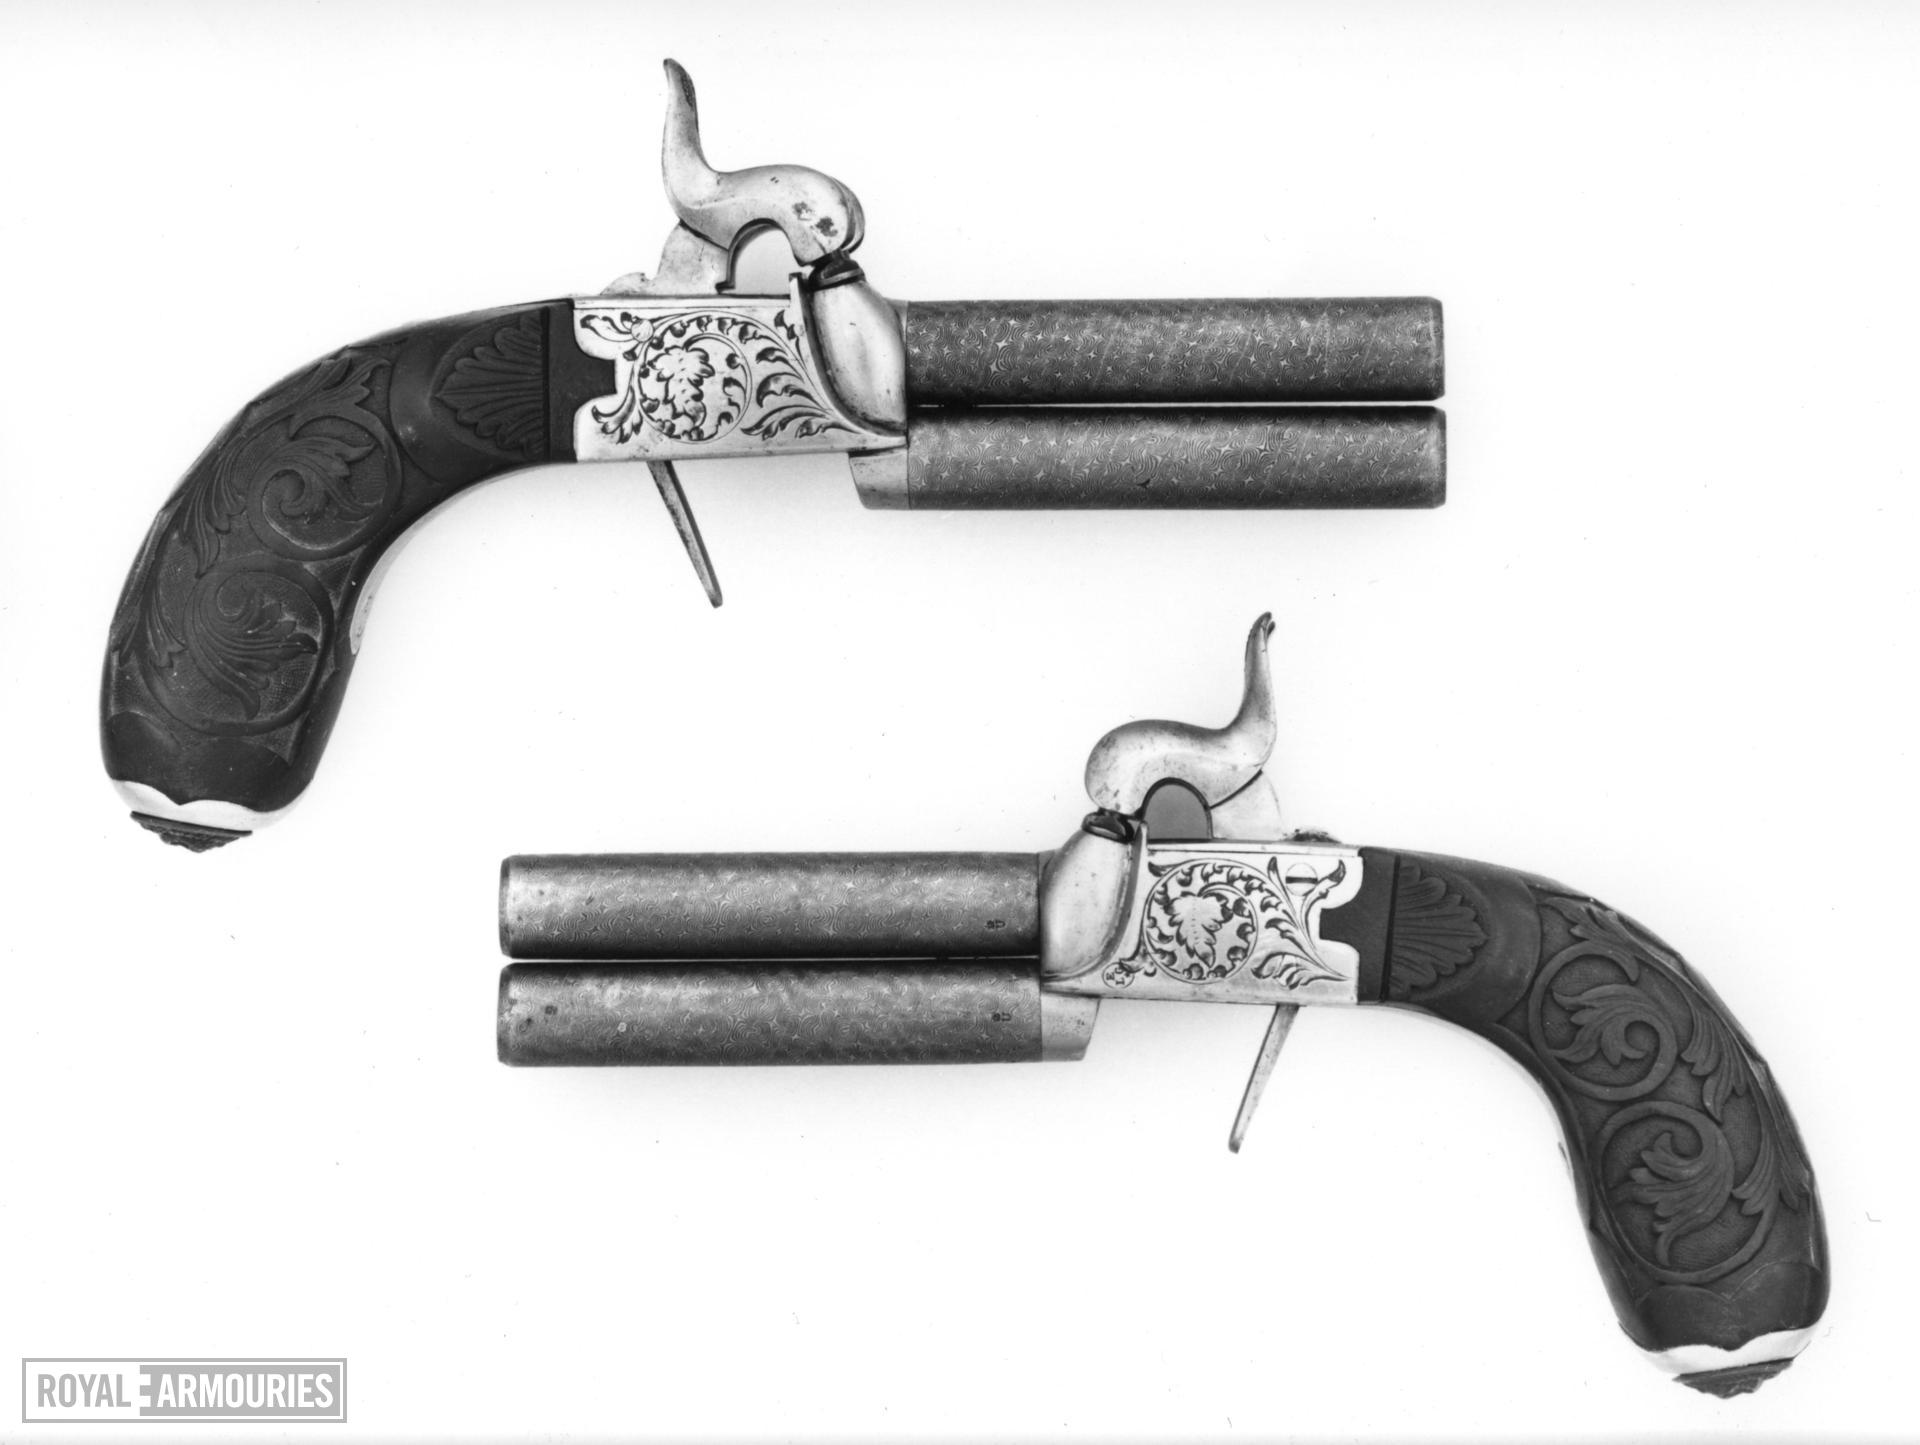 Percussion double-barrelled pistol One of a pair; see XII.2899